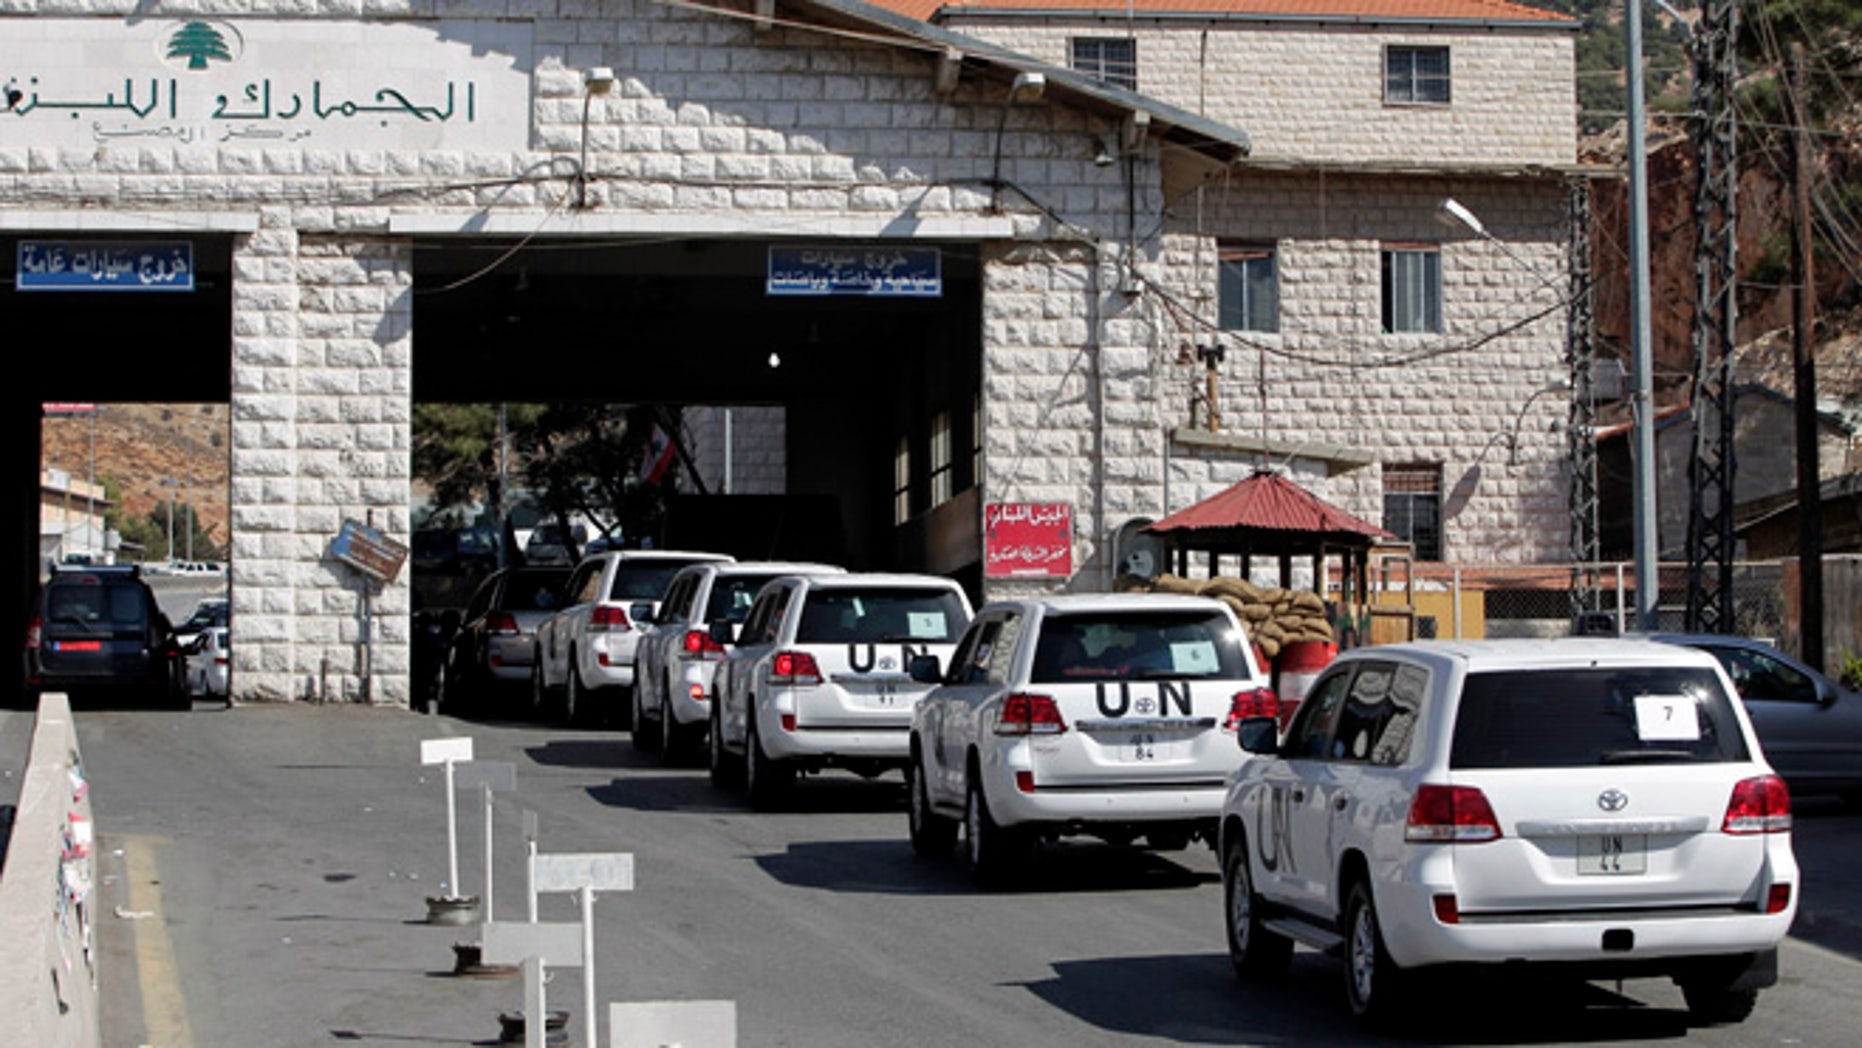 Oct. 1, 2013: A convoy of inspectors from the Organization for the Prohibition of Chemical Weapons prepares cross into Syria at the Lebanese border crossing point of Masnaa, eastern Bekaa Valley, Lebanon.